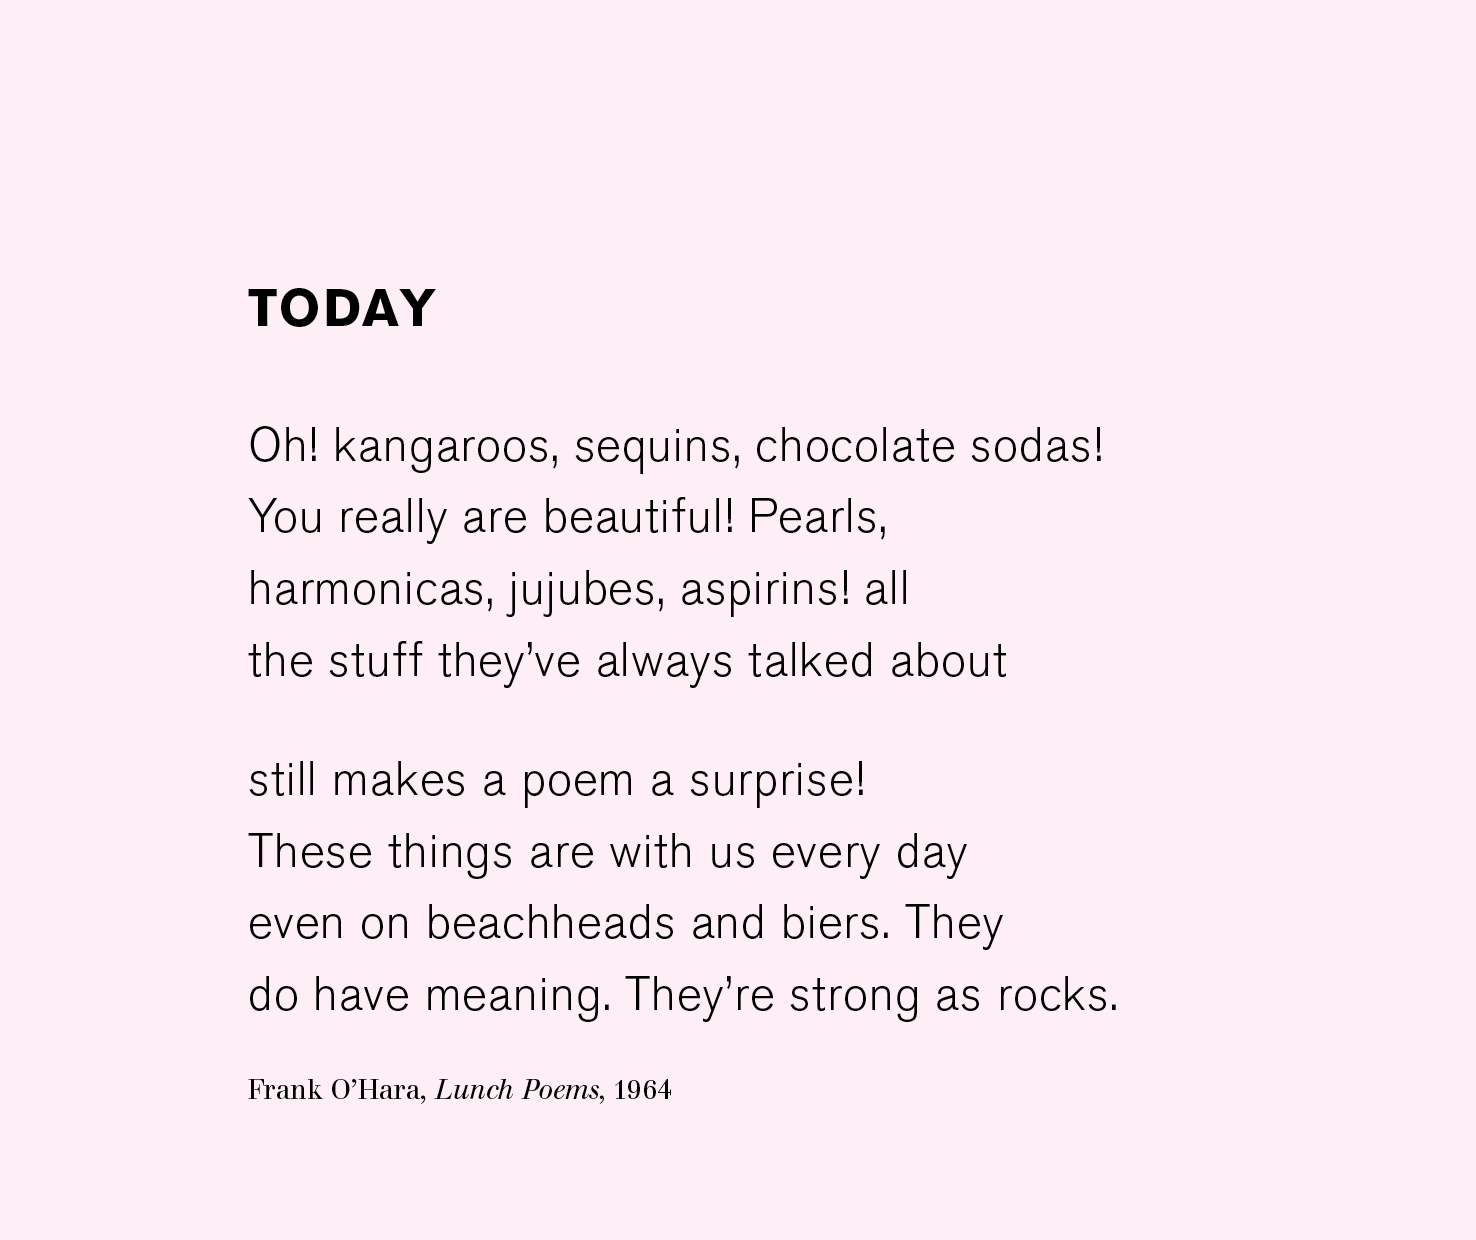 today frank o'hara